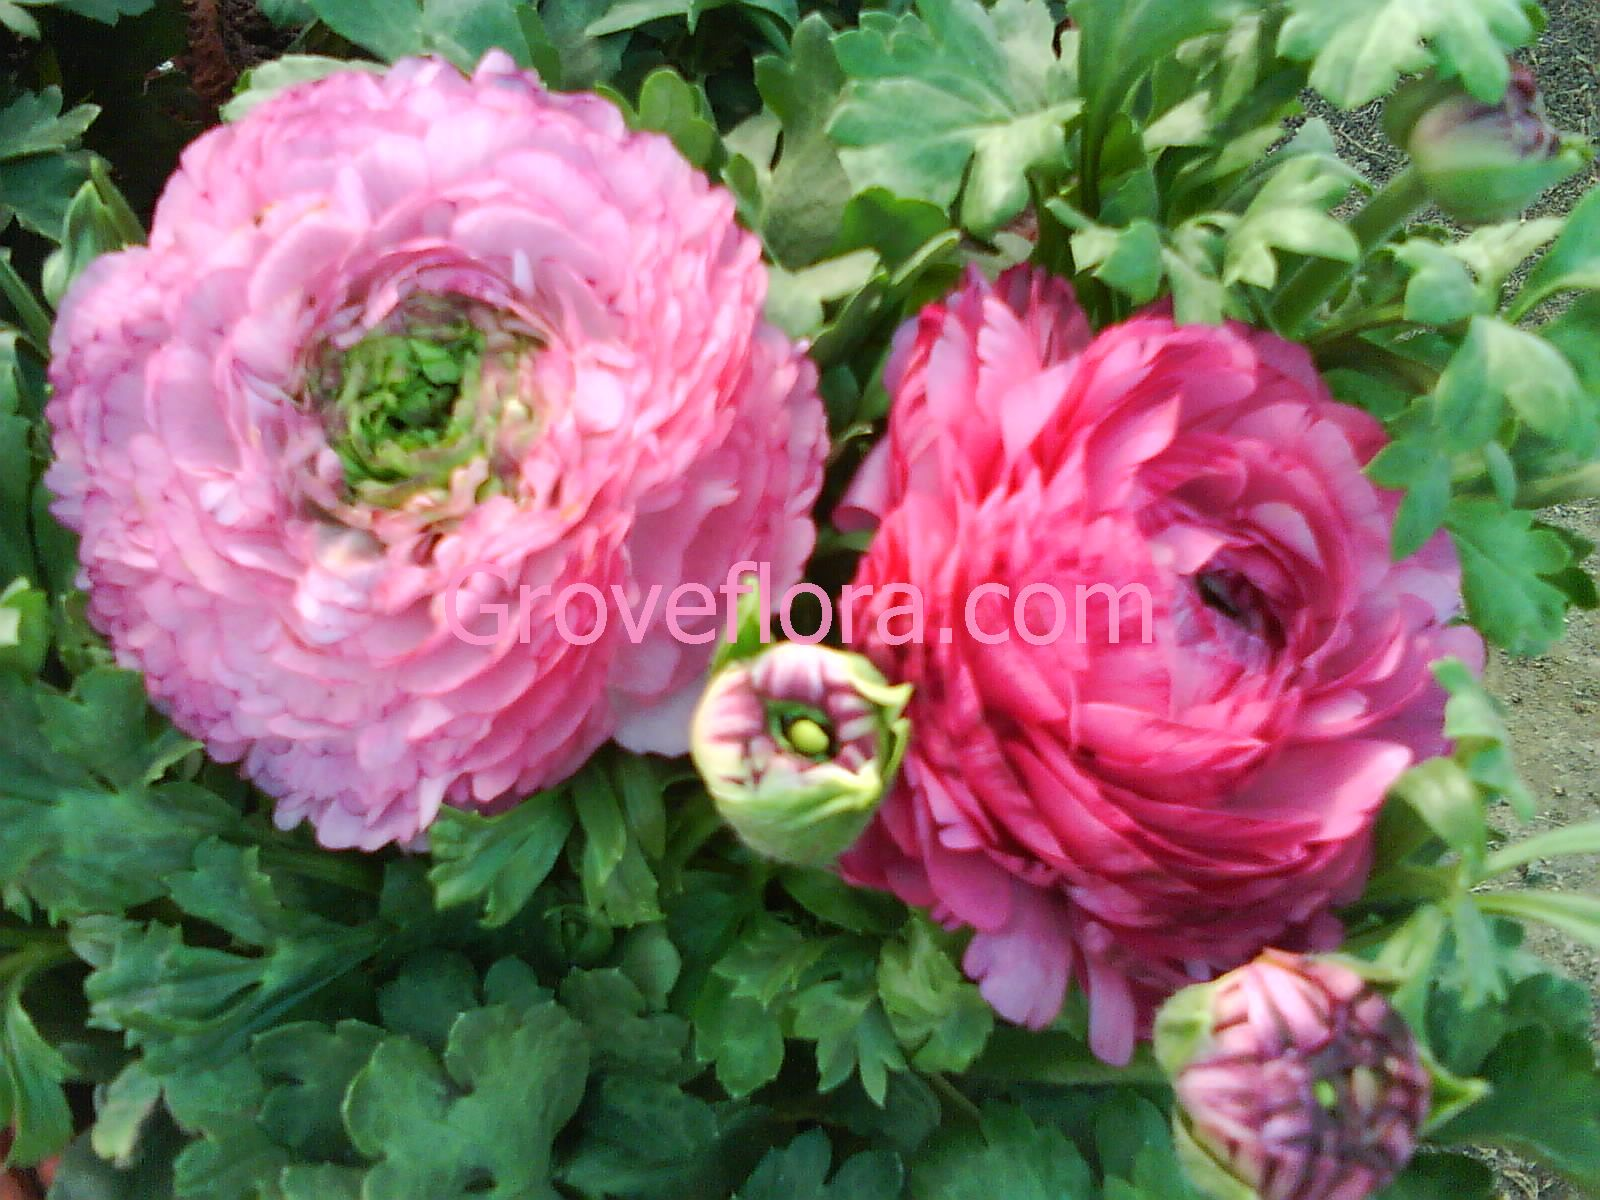 Ranunculus Groveflora flower bulbs India